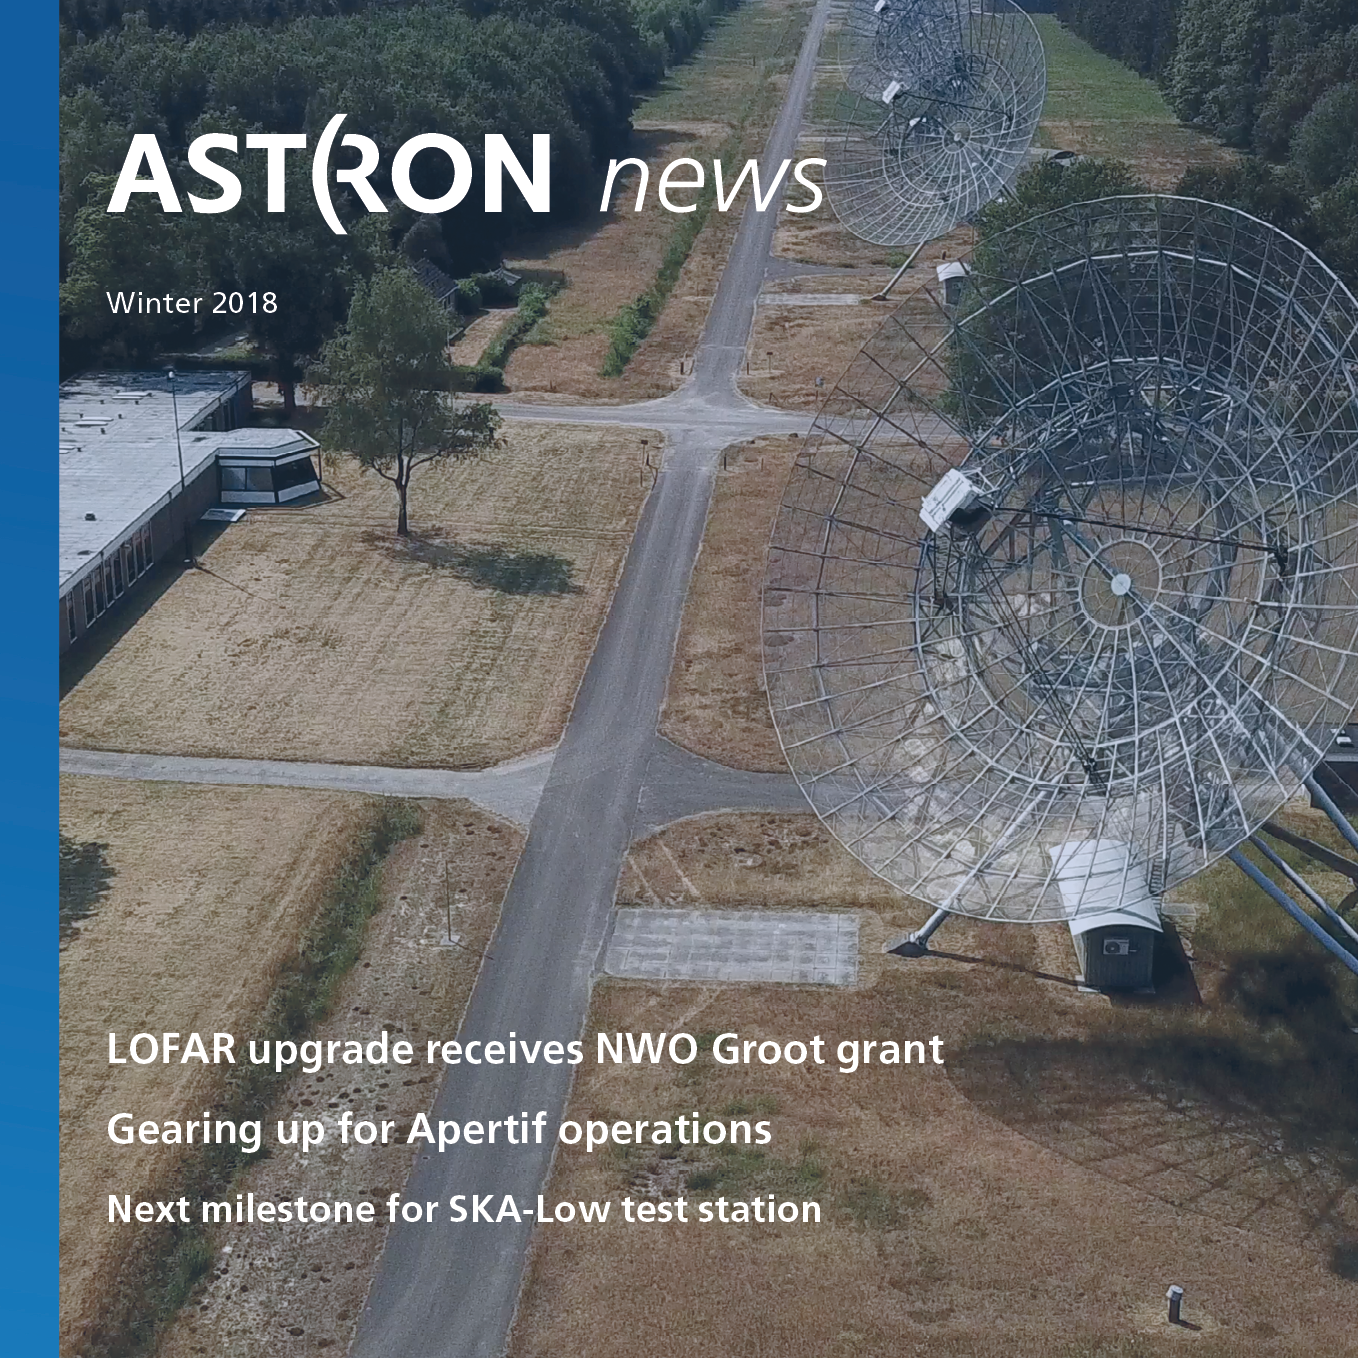 ASTRON News Winter 18